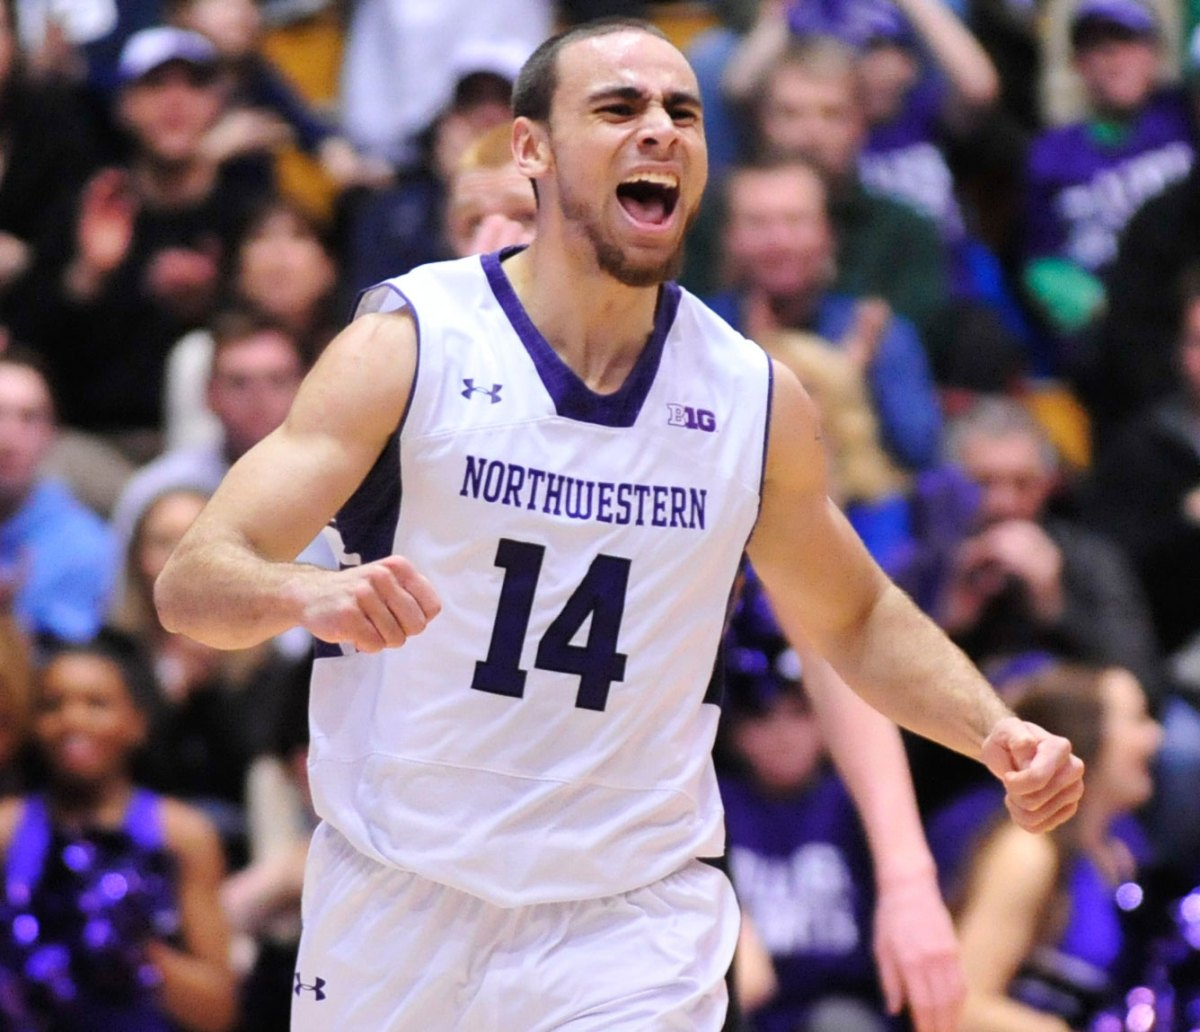 Tre Demps was all smiles after he hit three clutch triples to force overtime and double overtime in a stunning Northwestern victory over Michigan. Do Ari and Ryan have an award for him? Photo credit: David Banks, USA Today Sports.